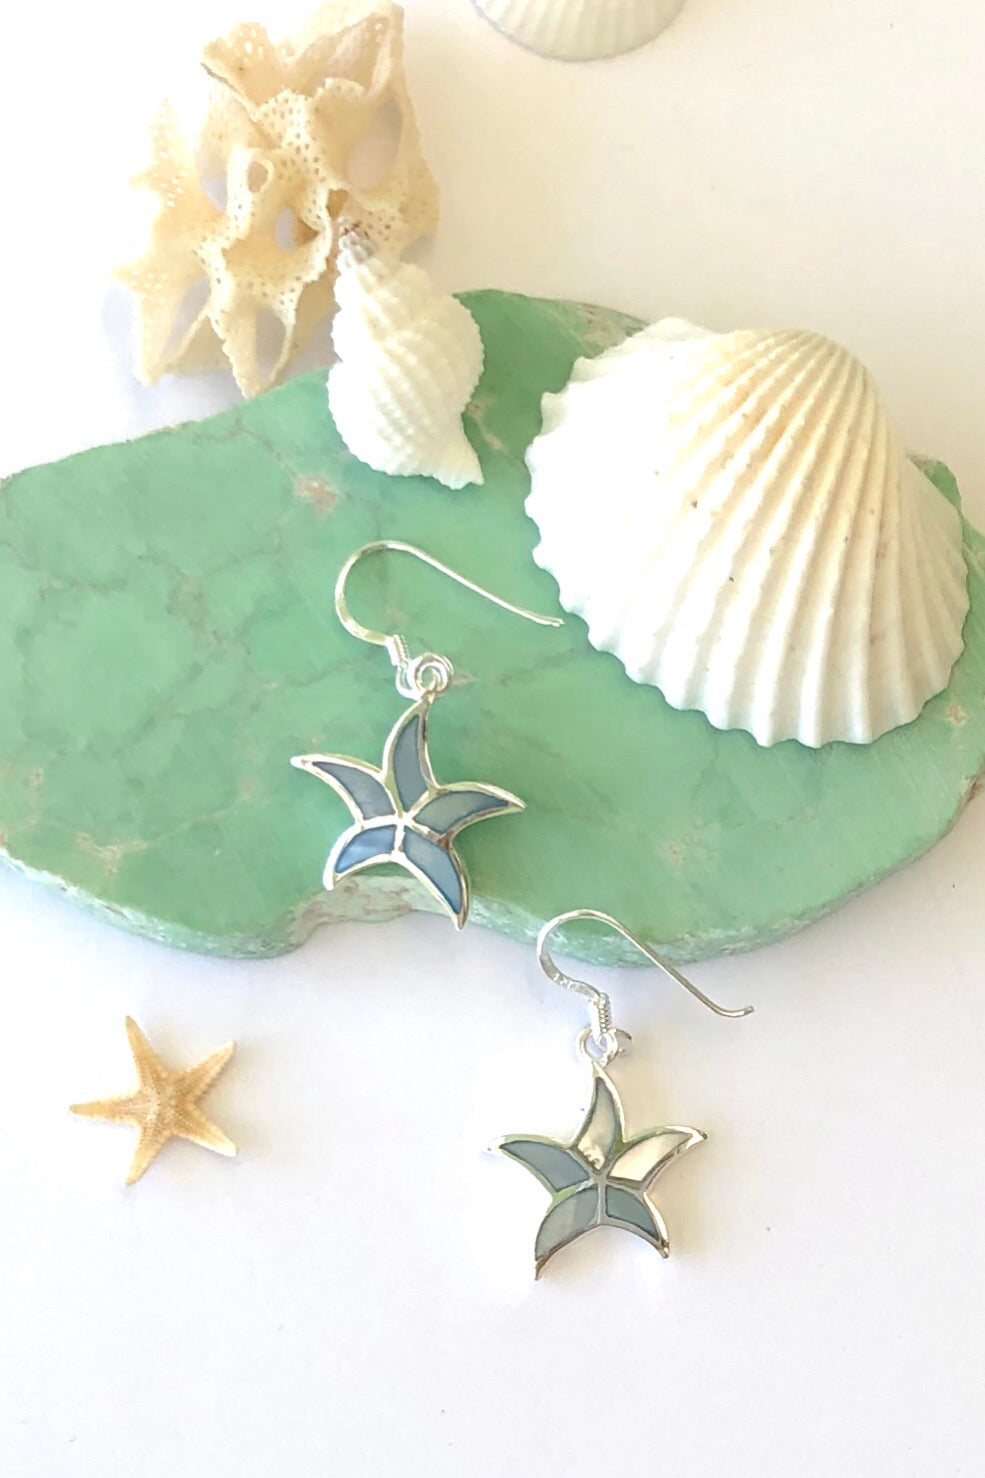 Gorgeous dainty starfish boasting the best of the iridescent shell.